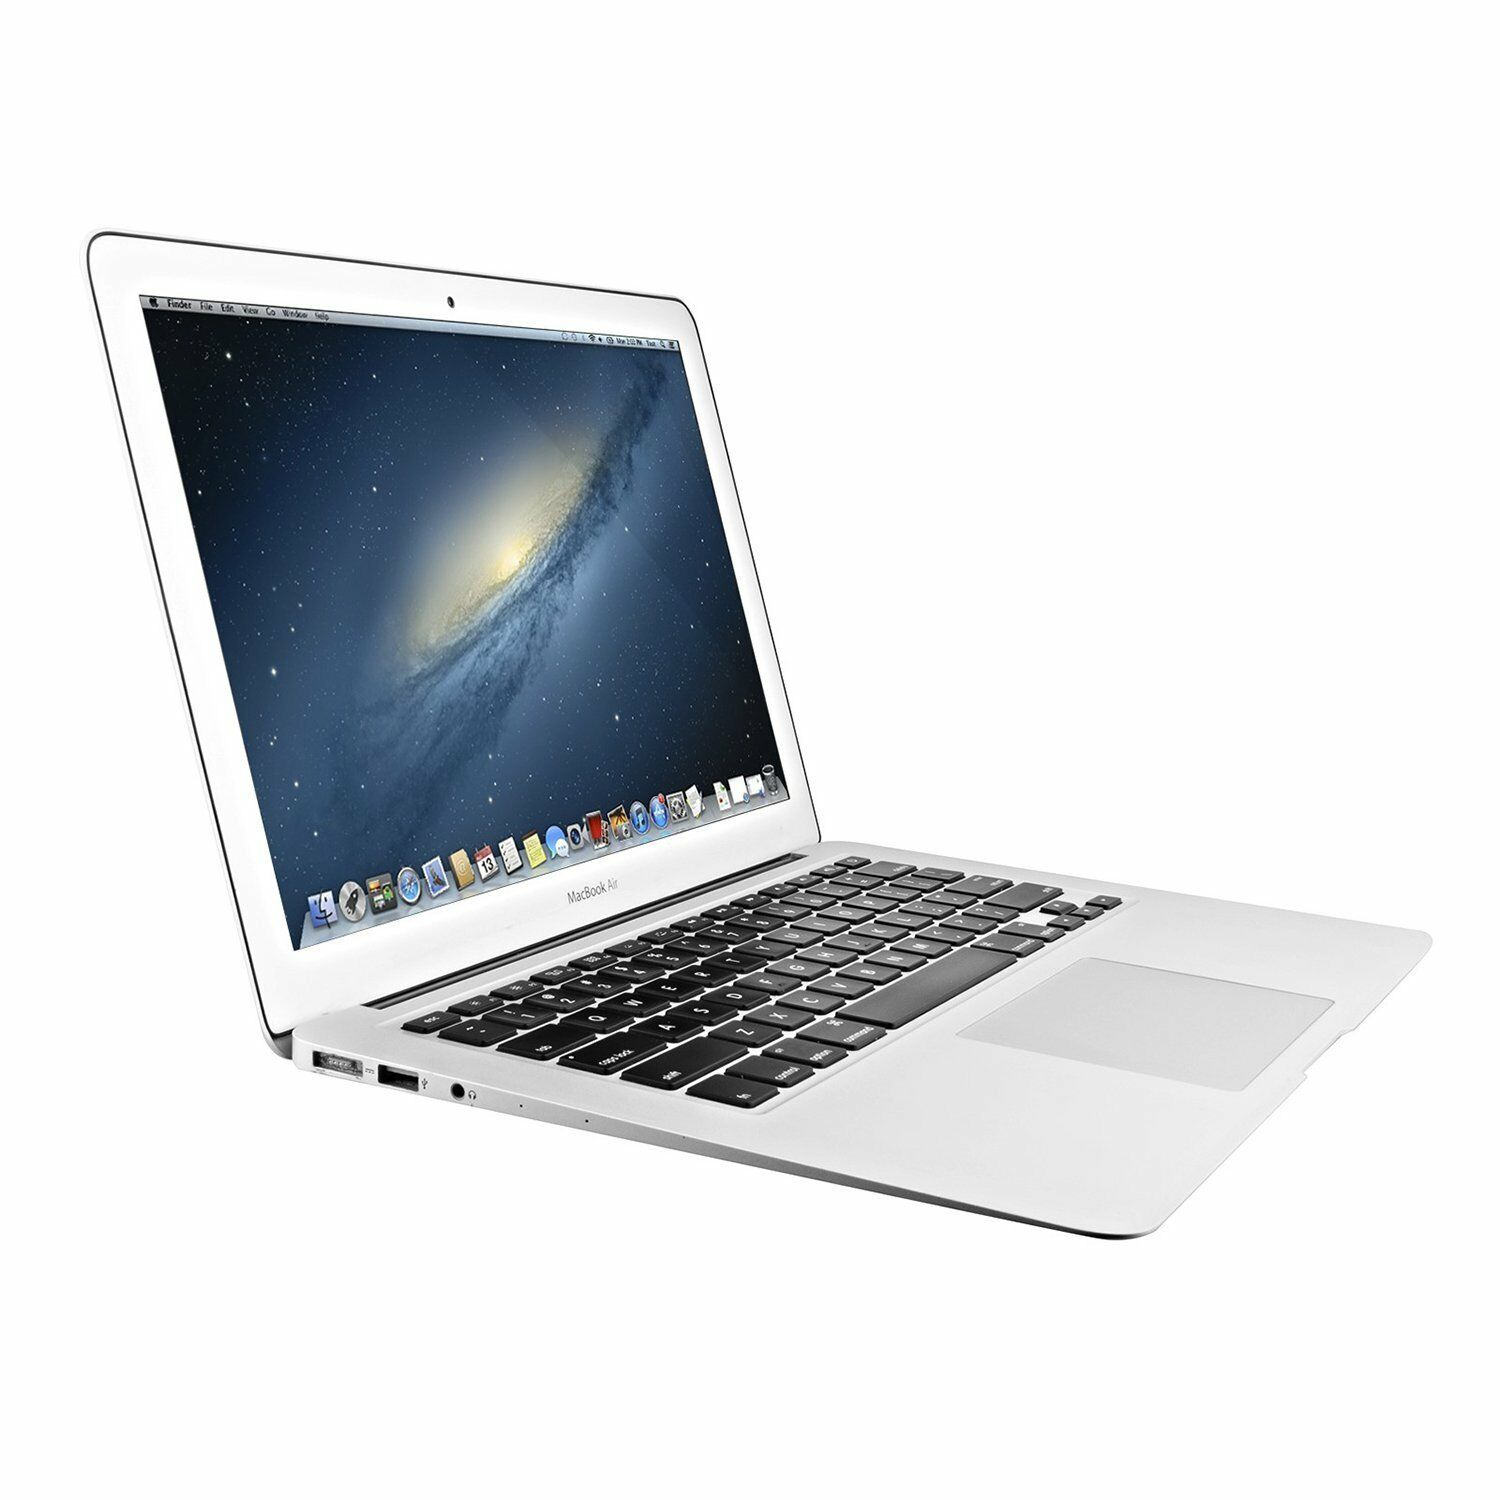 Apple MacBook Air 13.3 i5 Processor 4GB RAM 128GB SSD MD760LLB